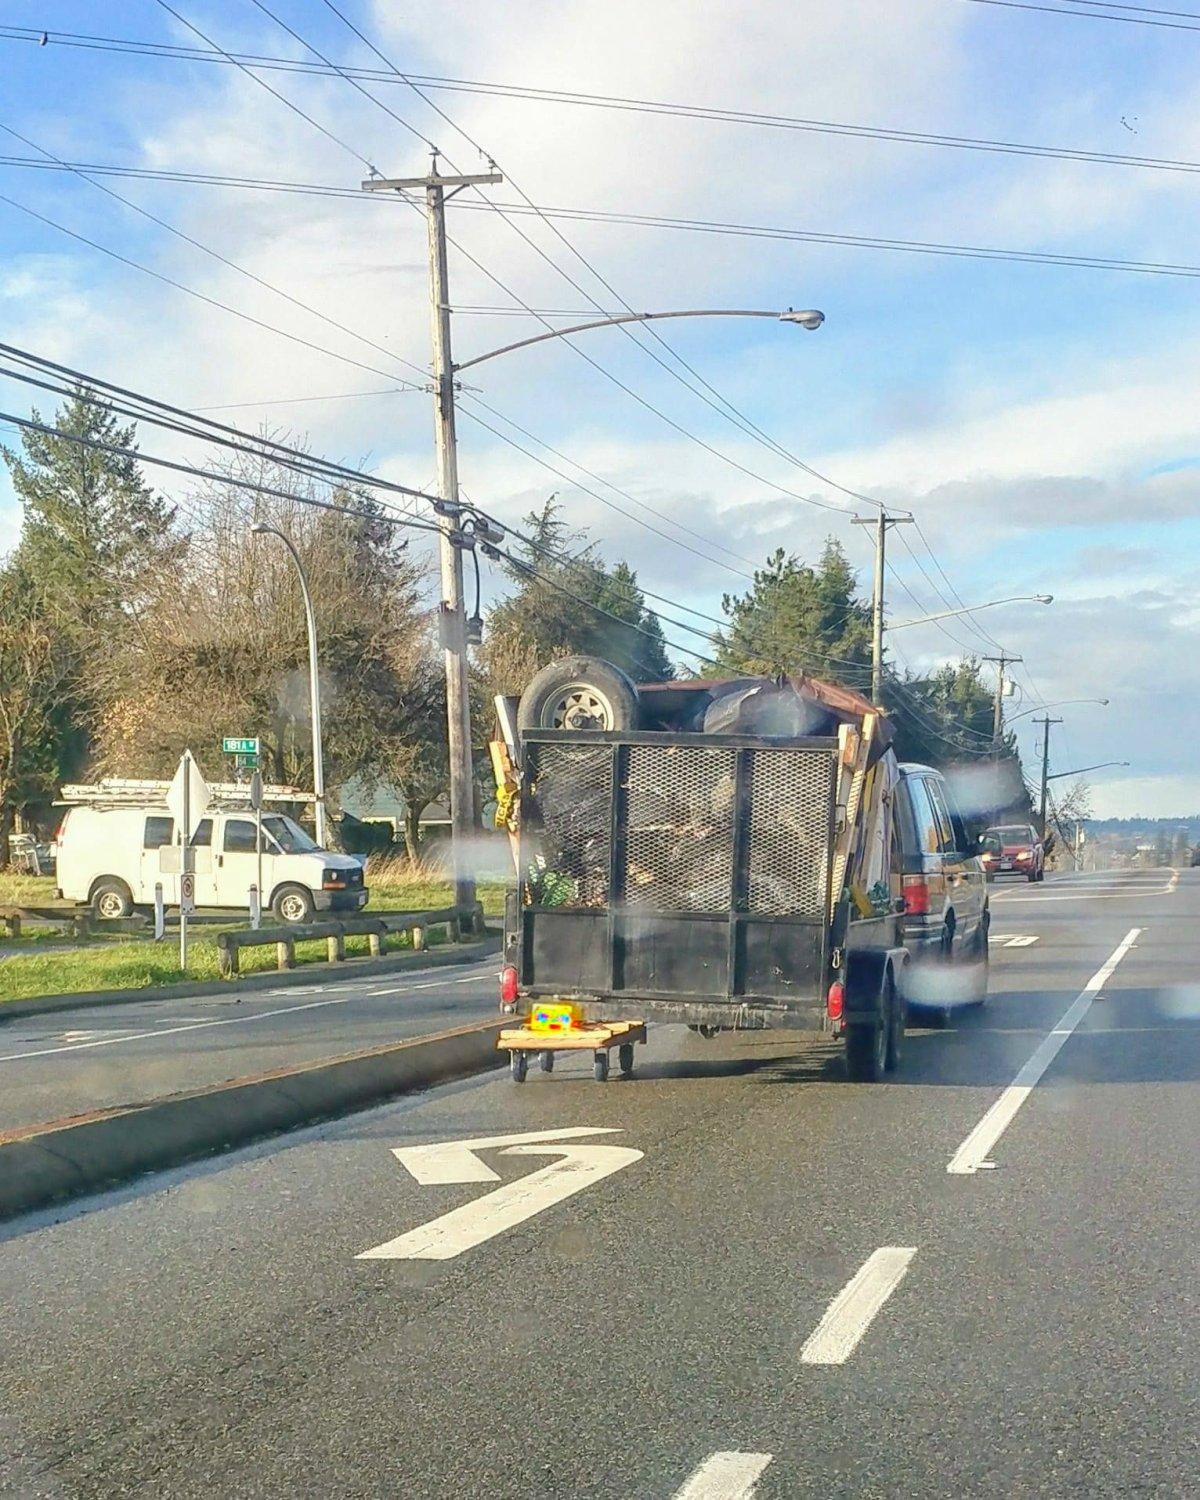 A trailer that appeared to have a dolly replacing its left wheels in Surrey on Nov. 16, 2017.